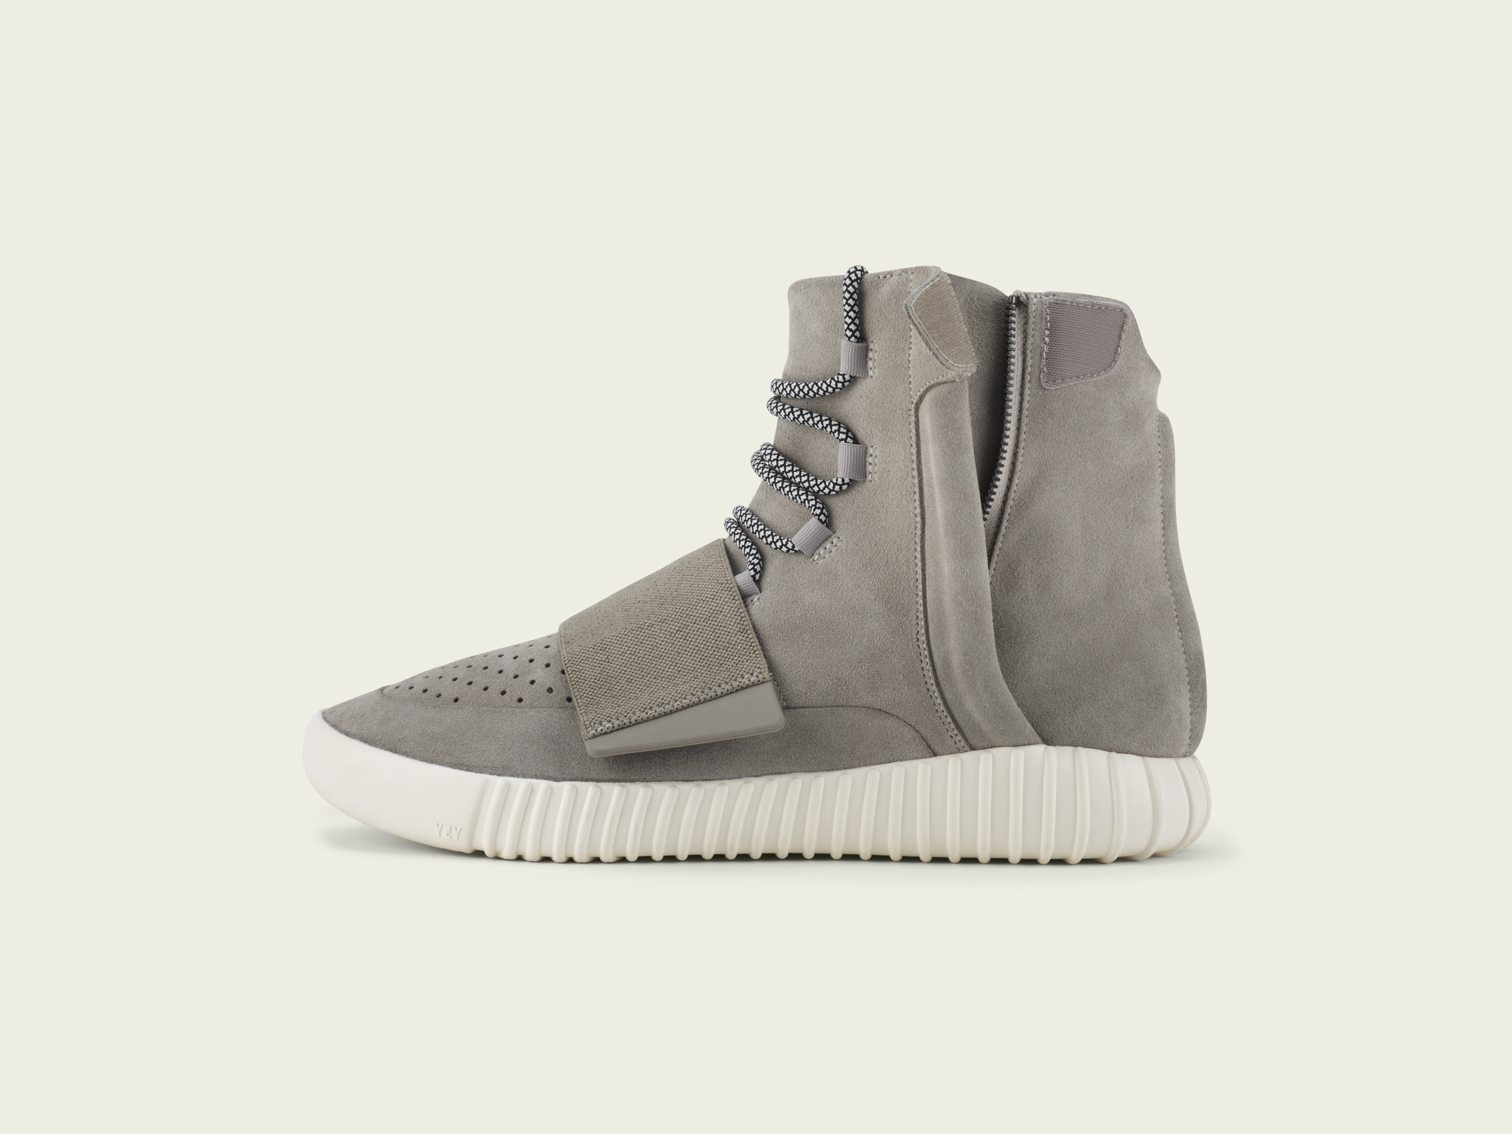 adidas Originals x Kanye West Yeezy Boost 5